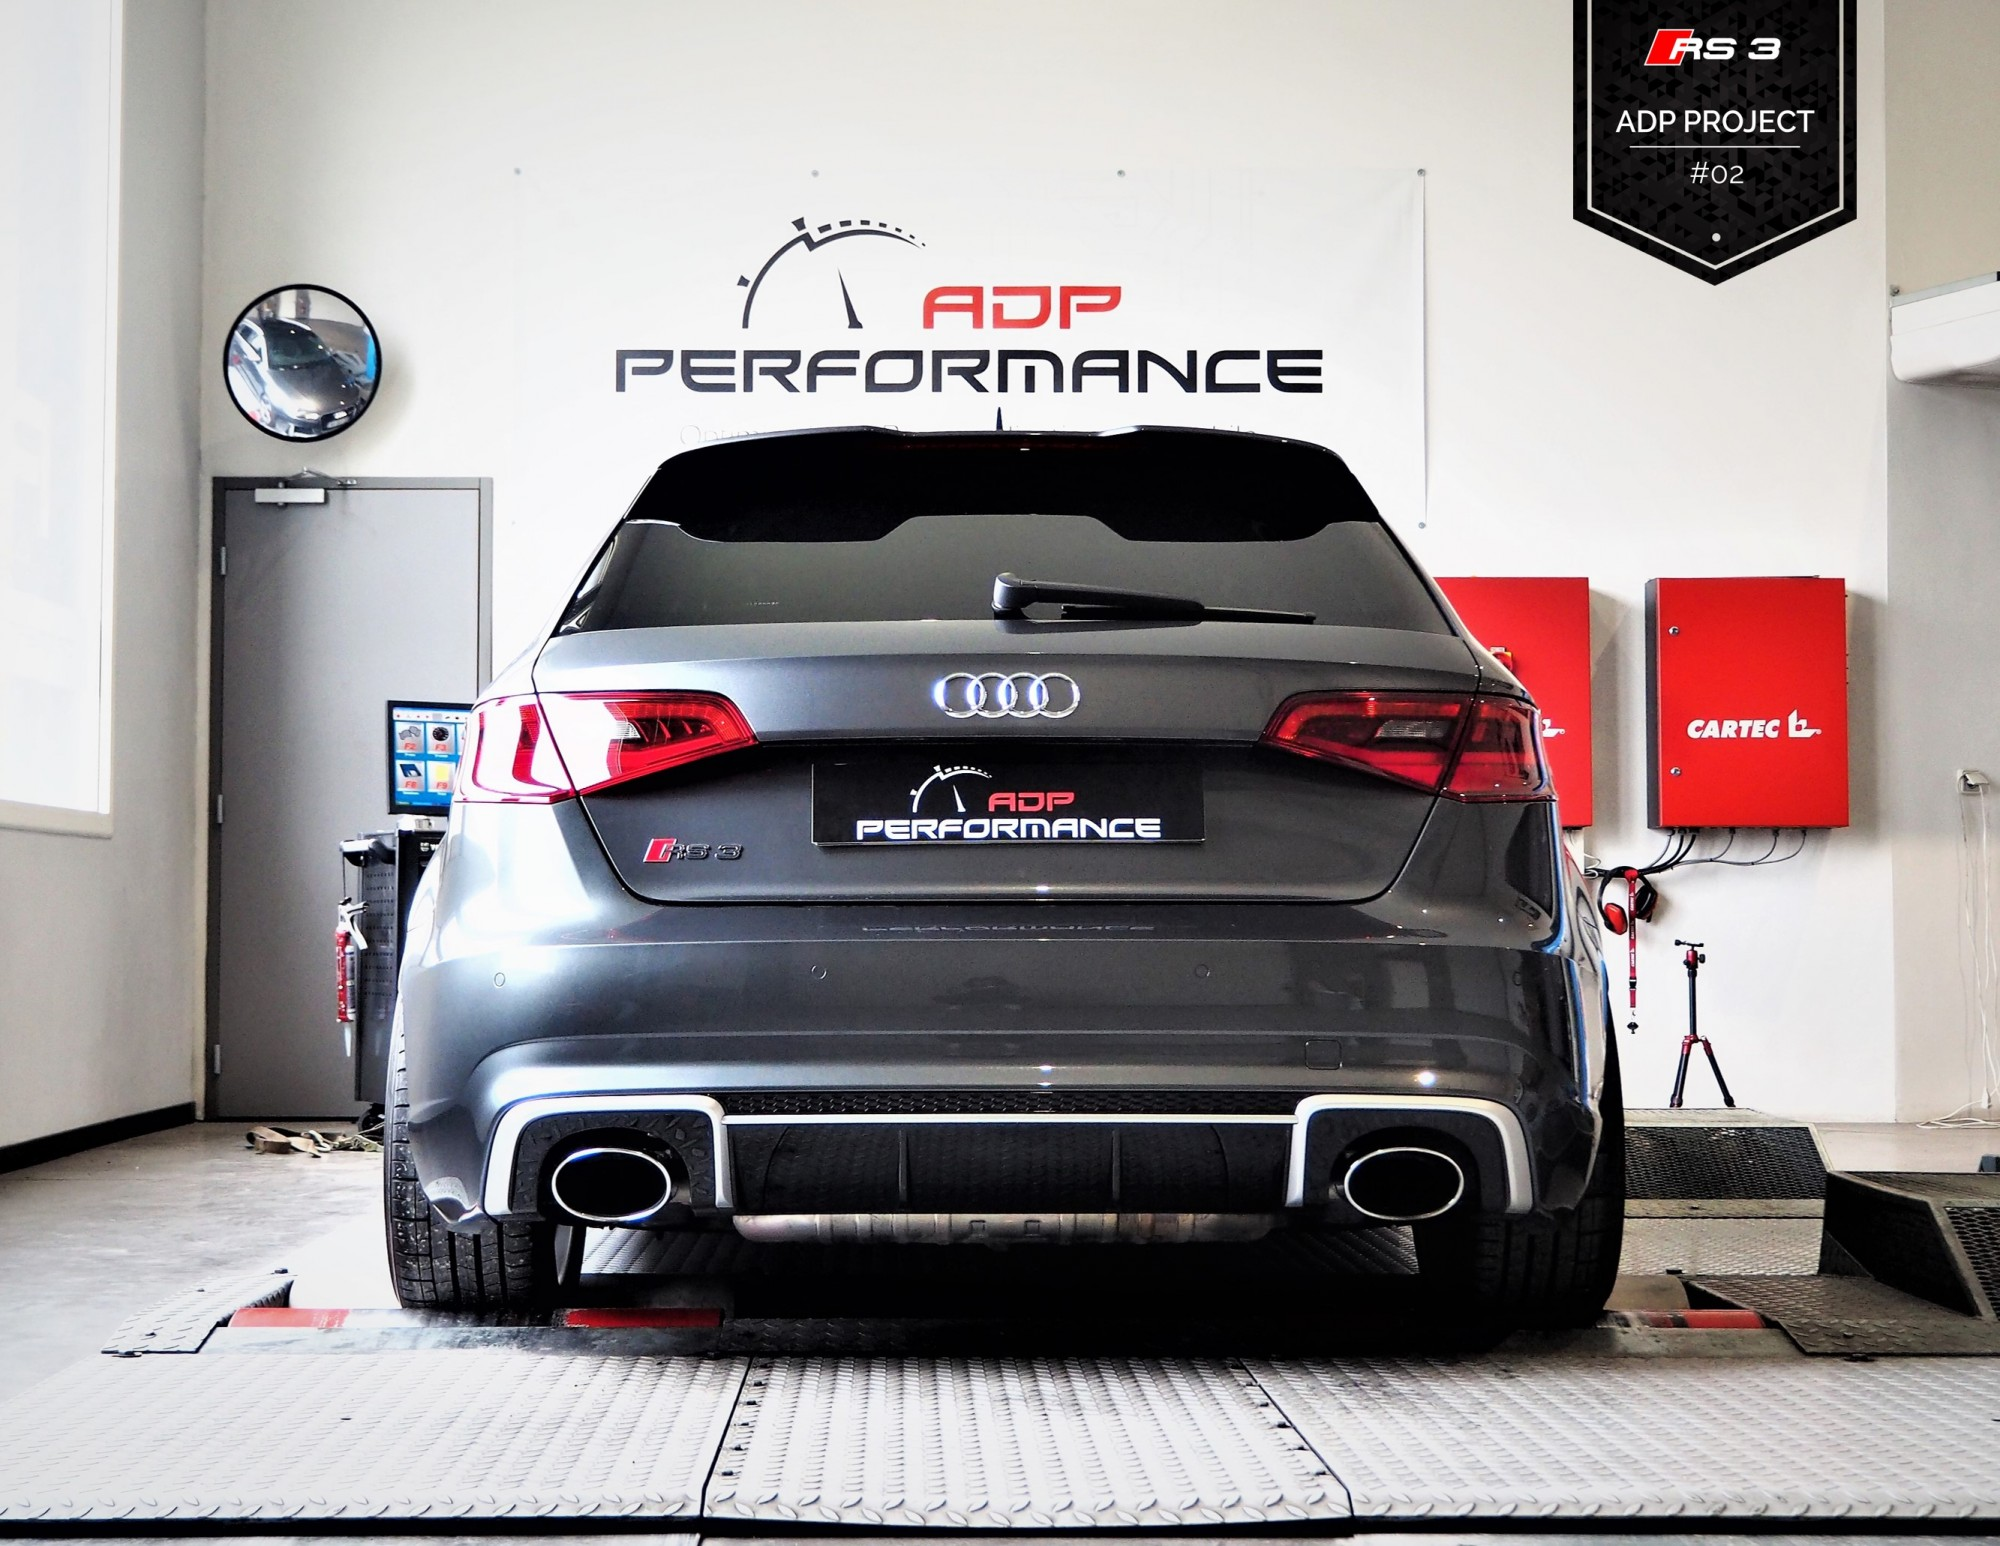 audi rs3 adp project 02 le stage 1 actualites